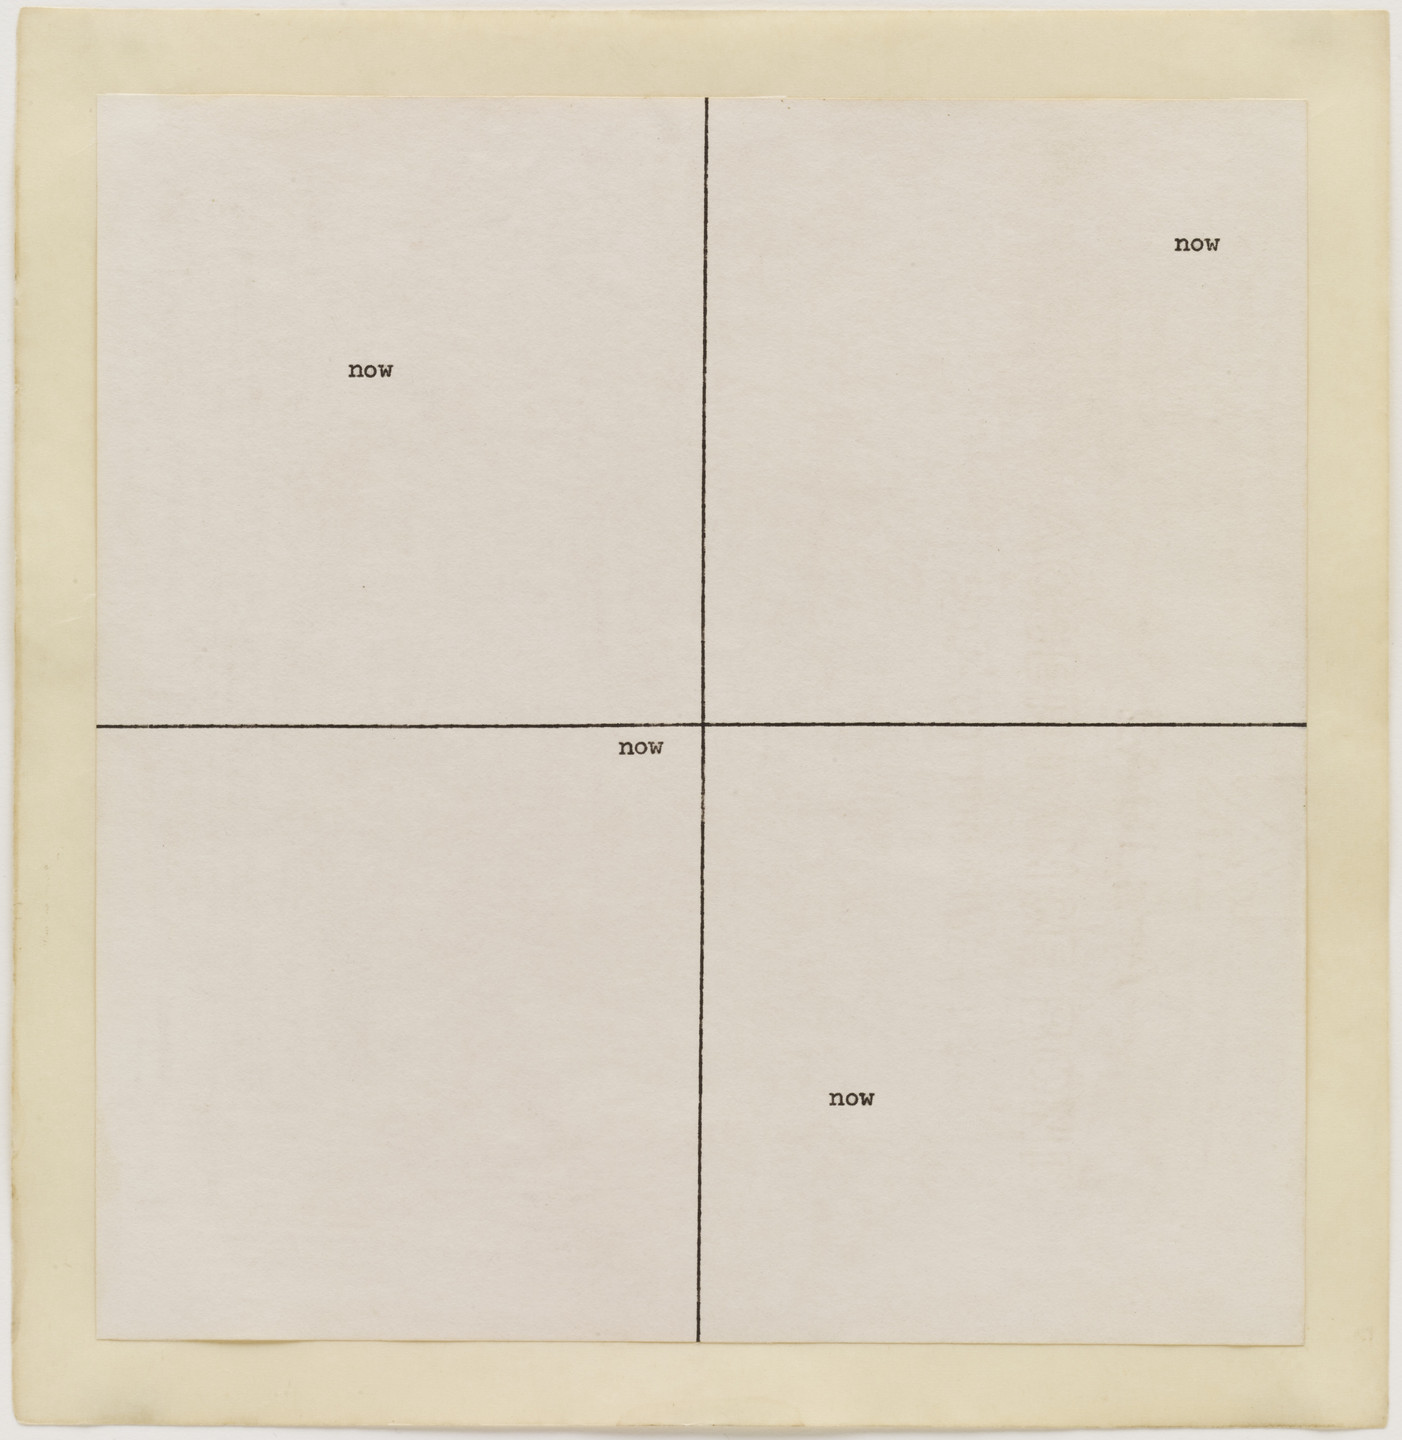 Carl Andre. now now. 1967